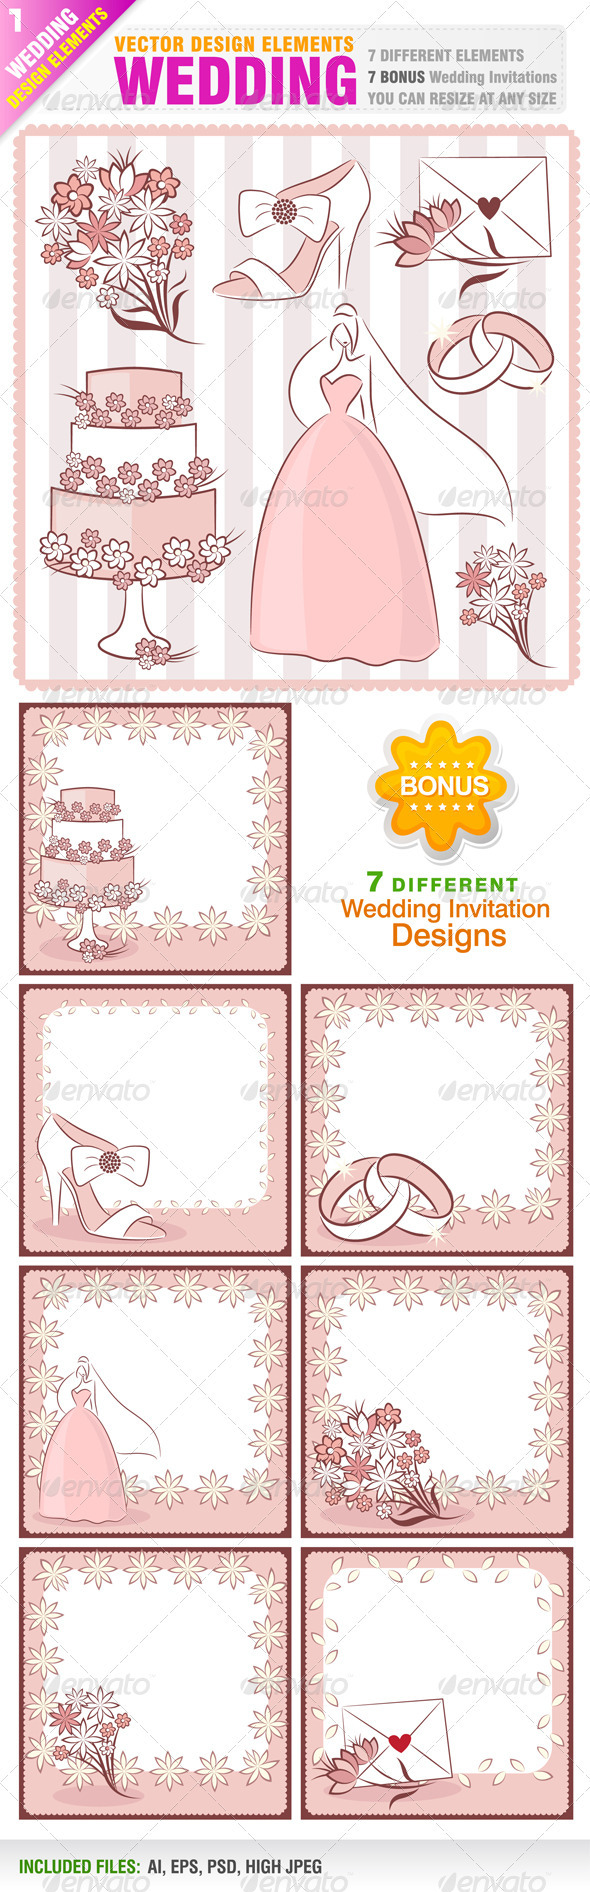 Wedding Design Elements and Invitations - Weddings Seasons/Holidays